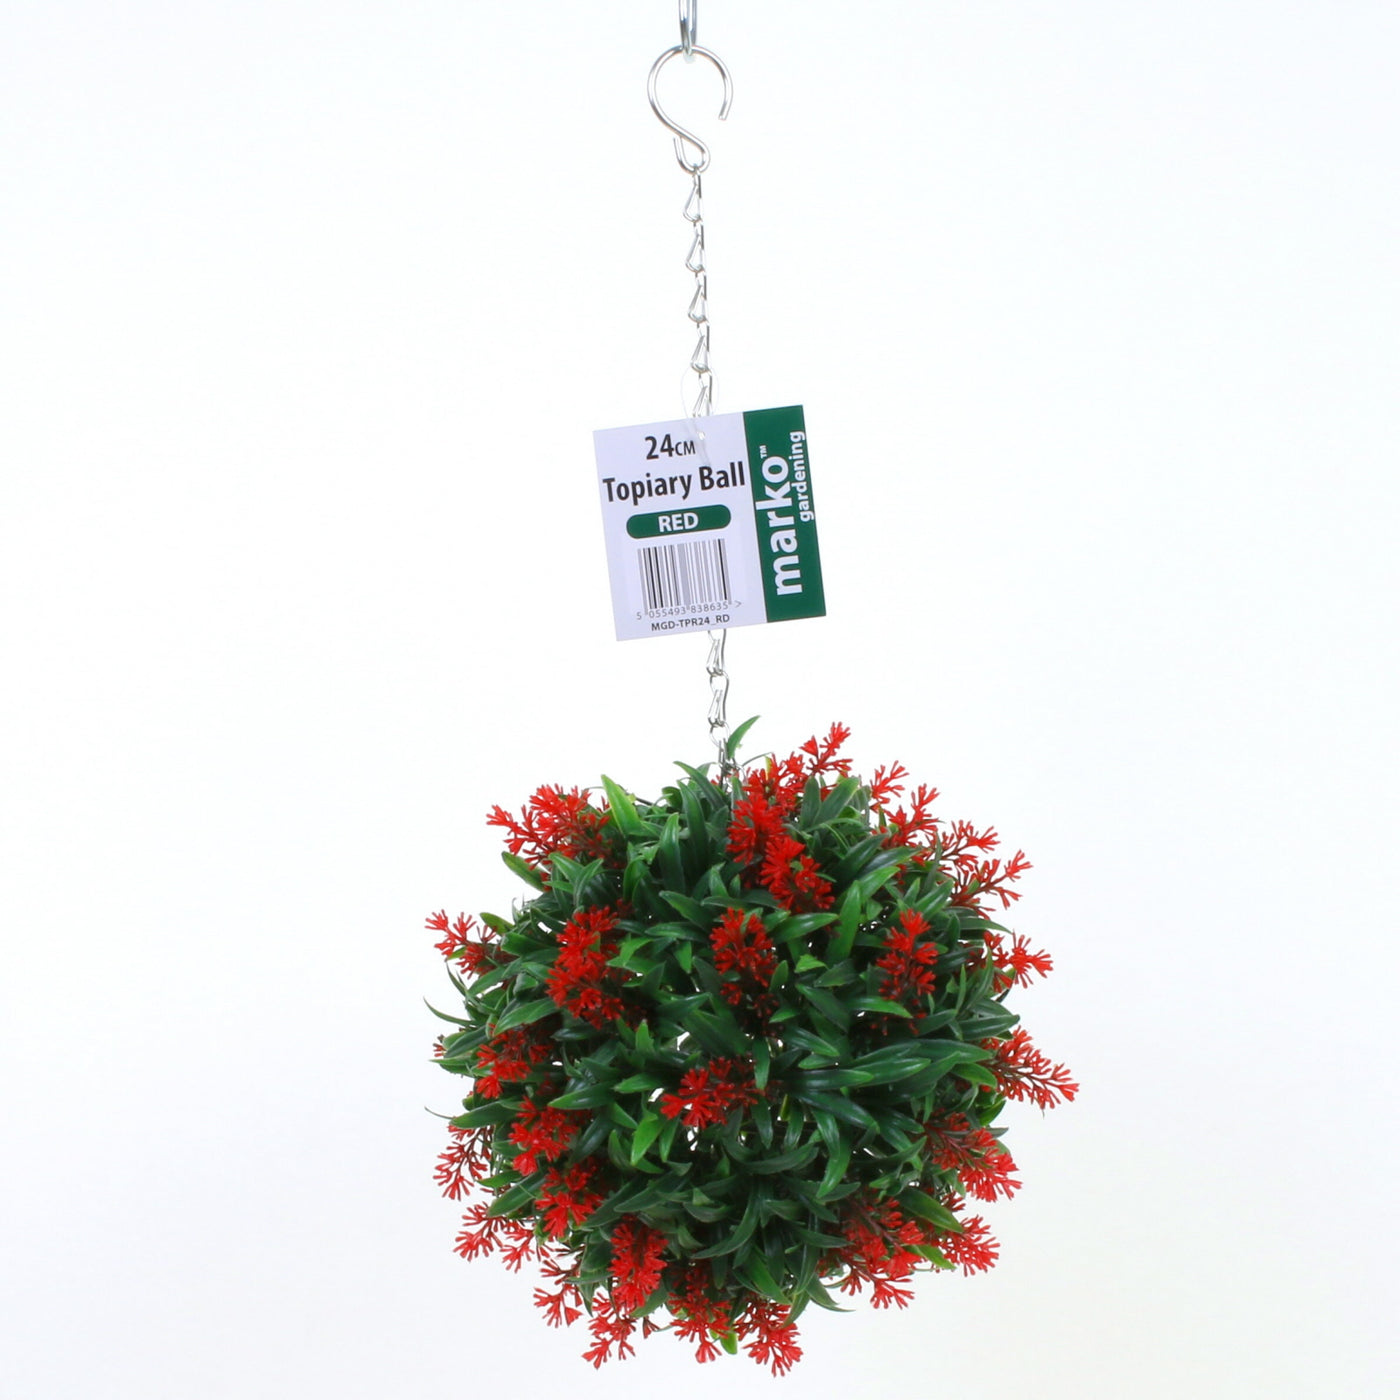 Christmas Topiary Balls.24cm Lavender Topiary Ball Red